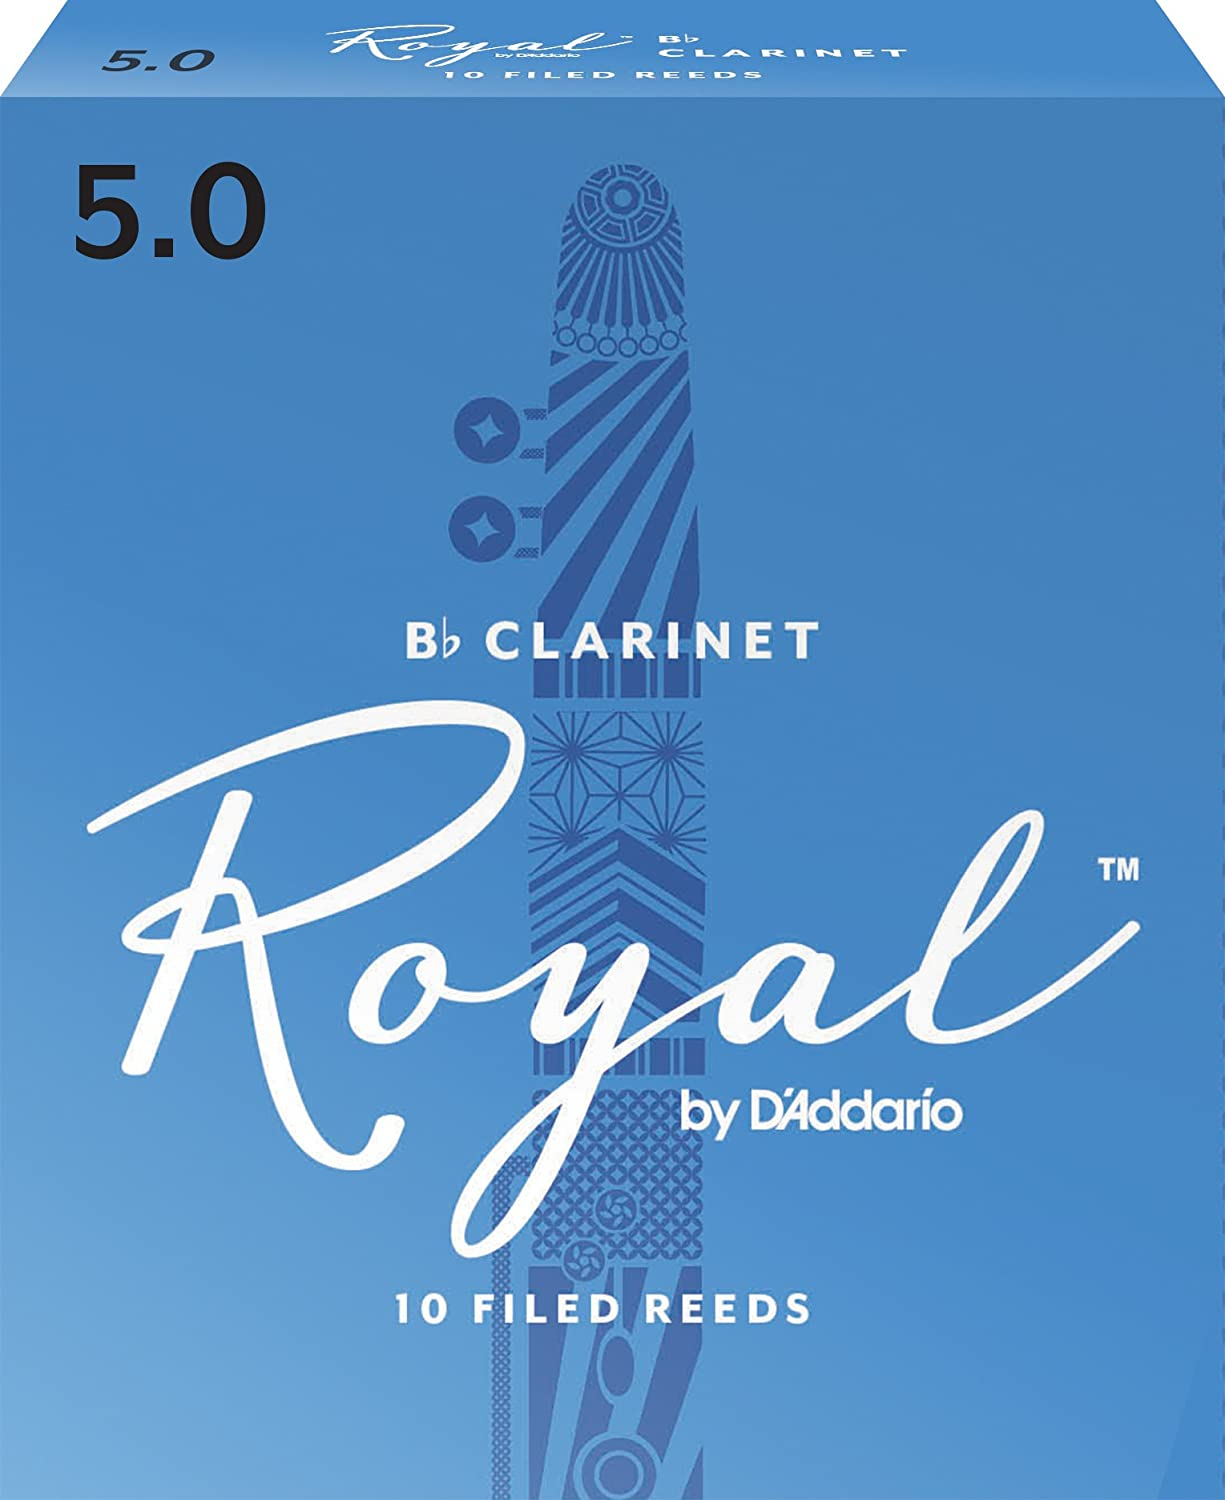 Royal by D'Addario RCB1010 Bb Clarinet Reeds, Strength 1.0, 10-pack D'Addario &Co. Inc